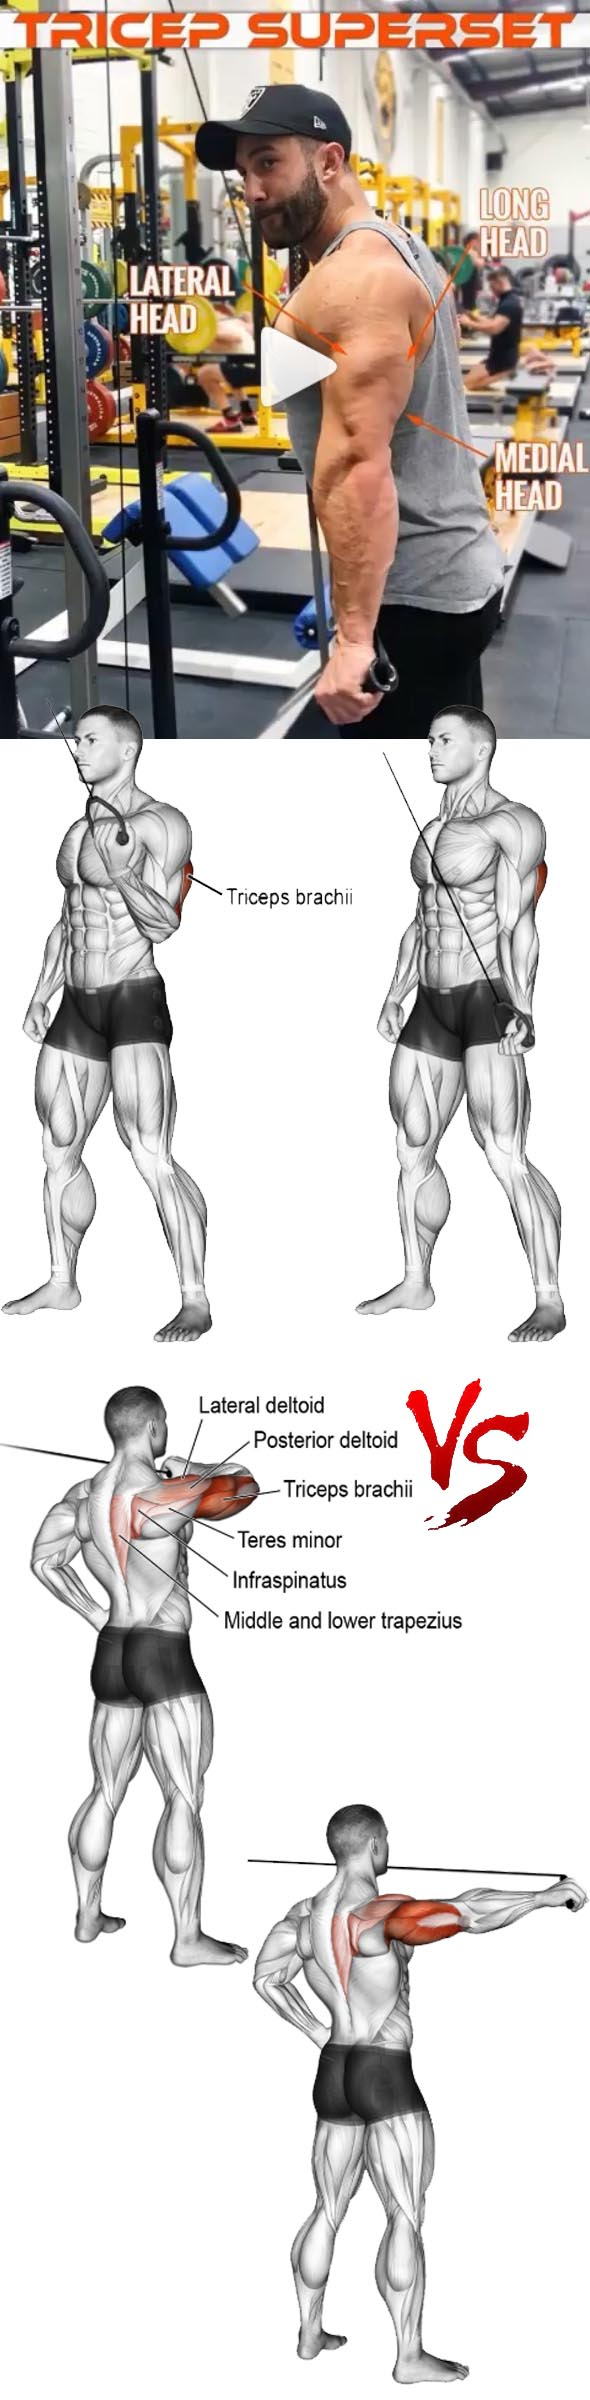 TRICEPS SUPERSET